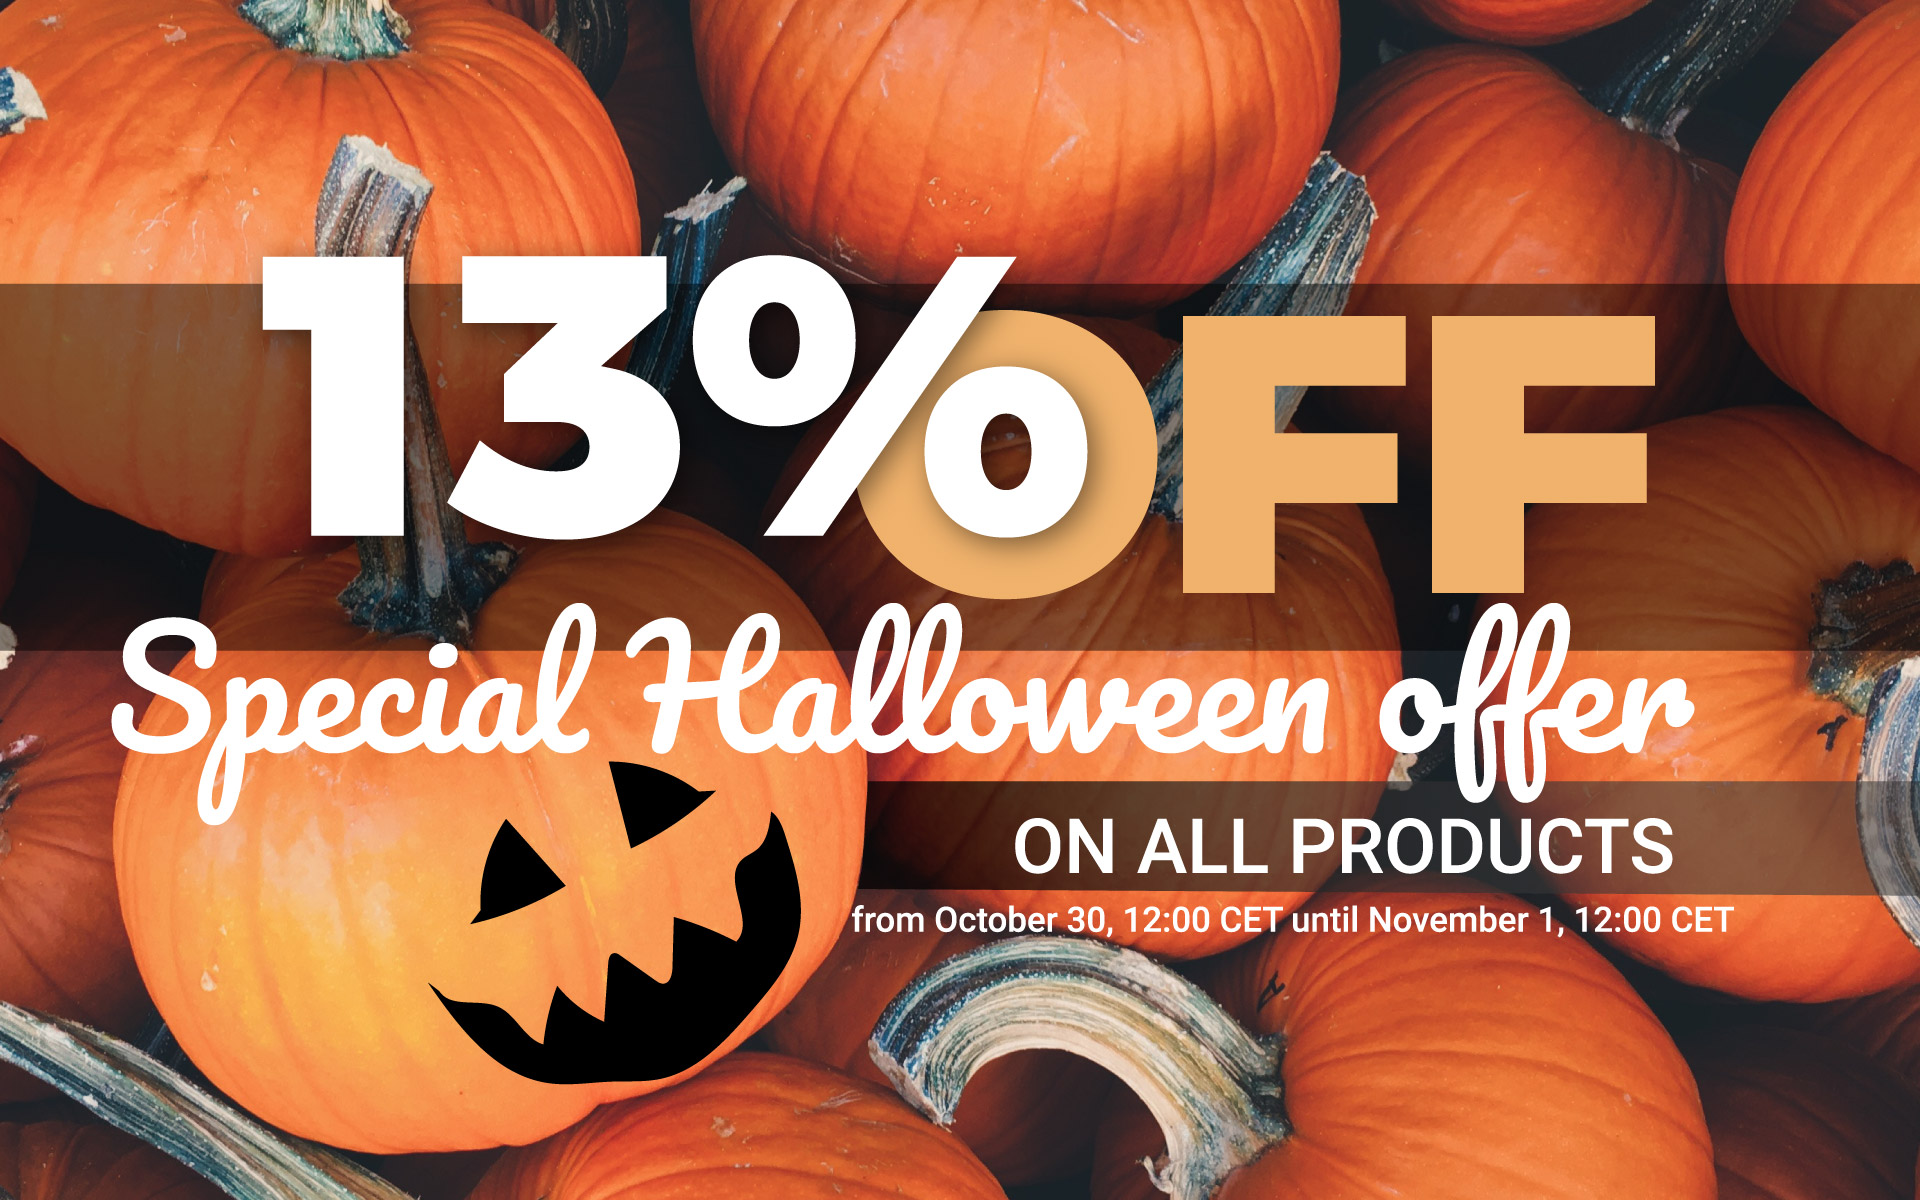 Special Halloween offer - 13% OFF on everything in the shop